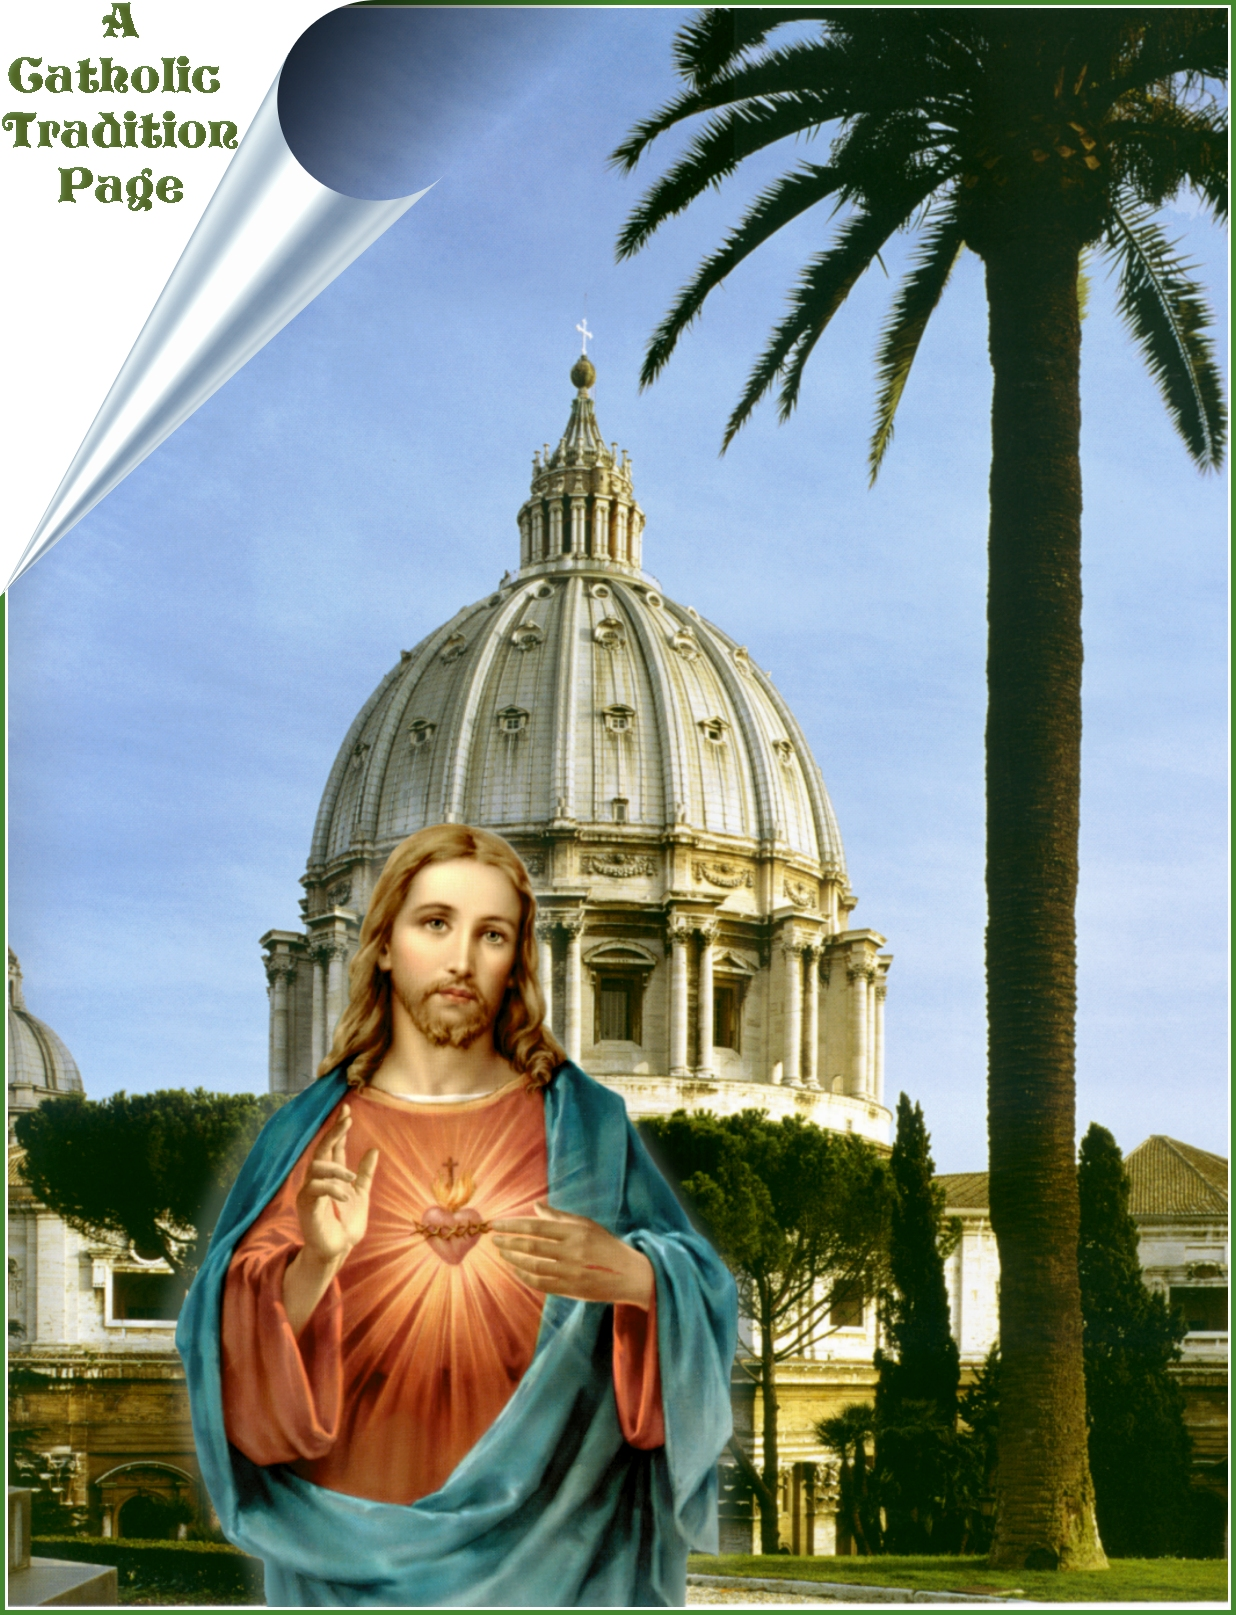 roman cathollicism essay Learn about the basic beliefs and practices of catholicism catholicism 101 an introduction to the beliefs and practices of the catholic church share.